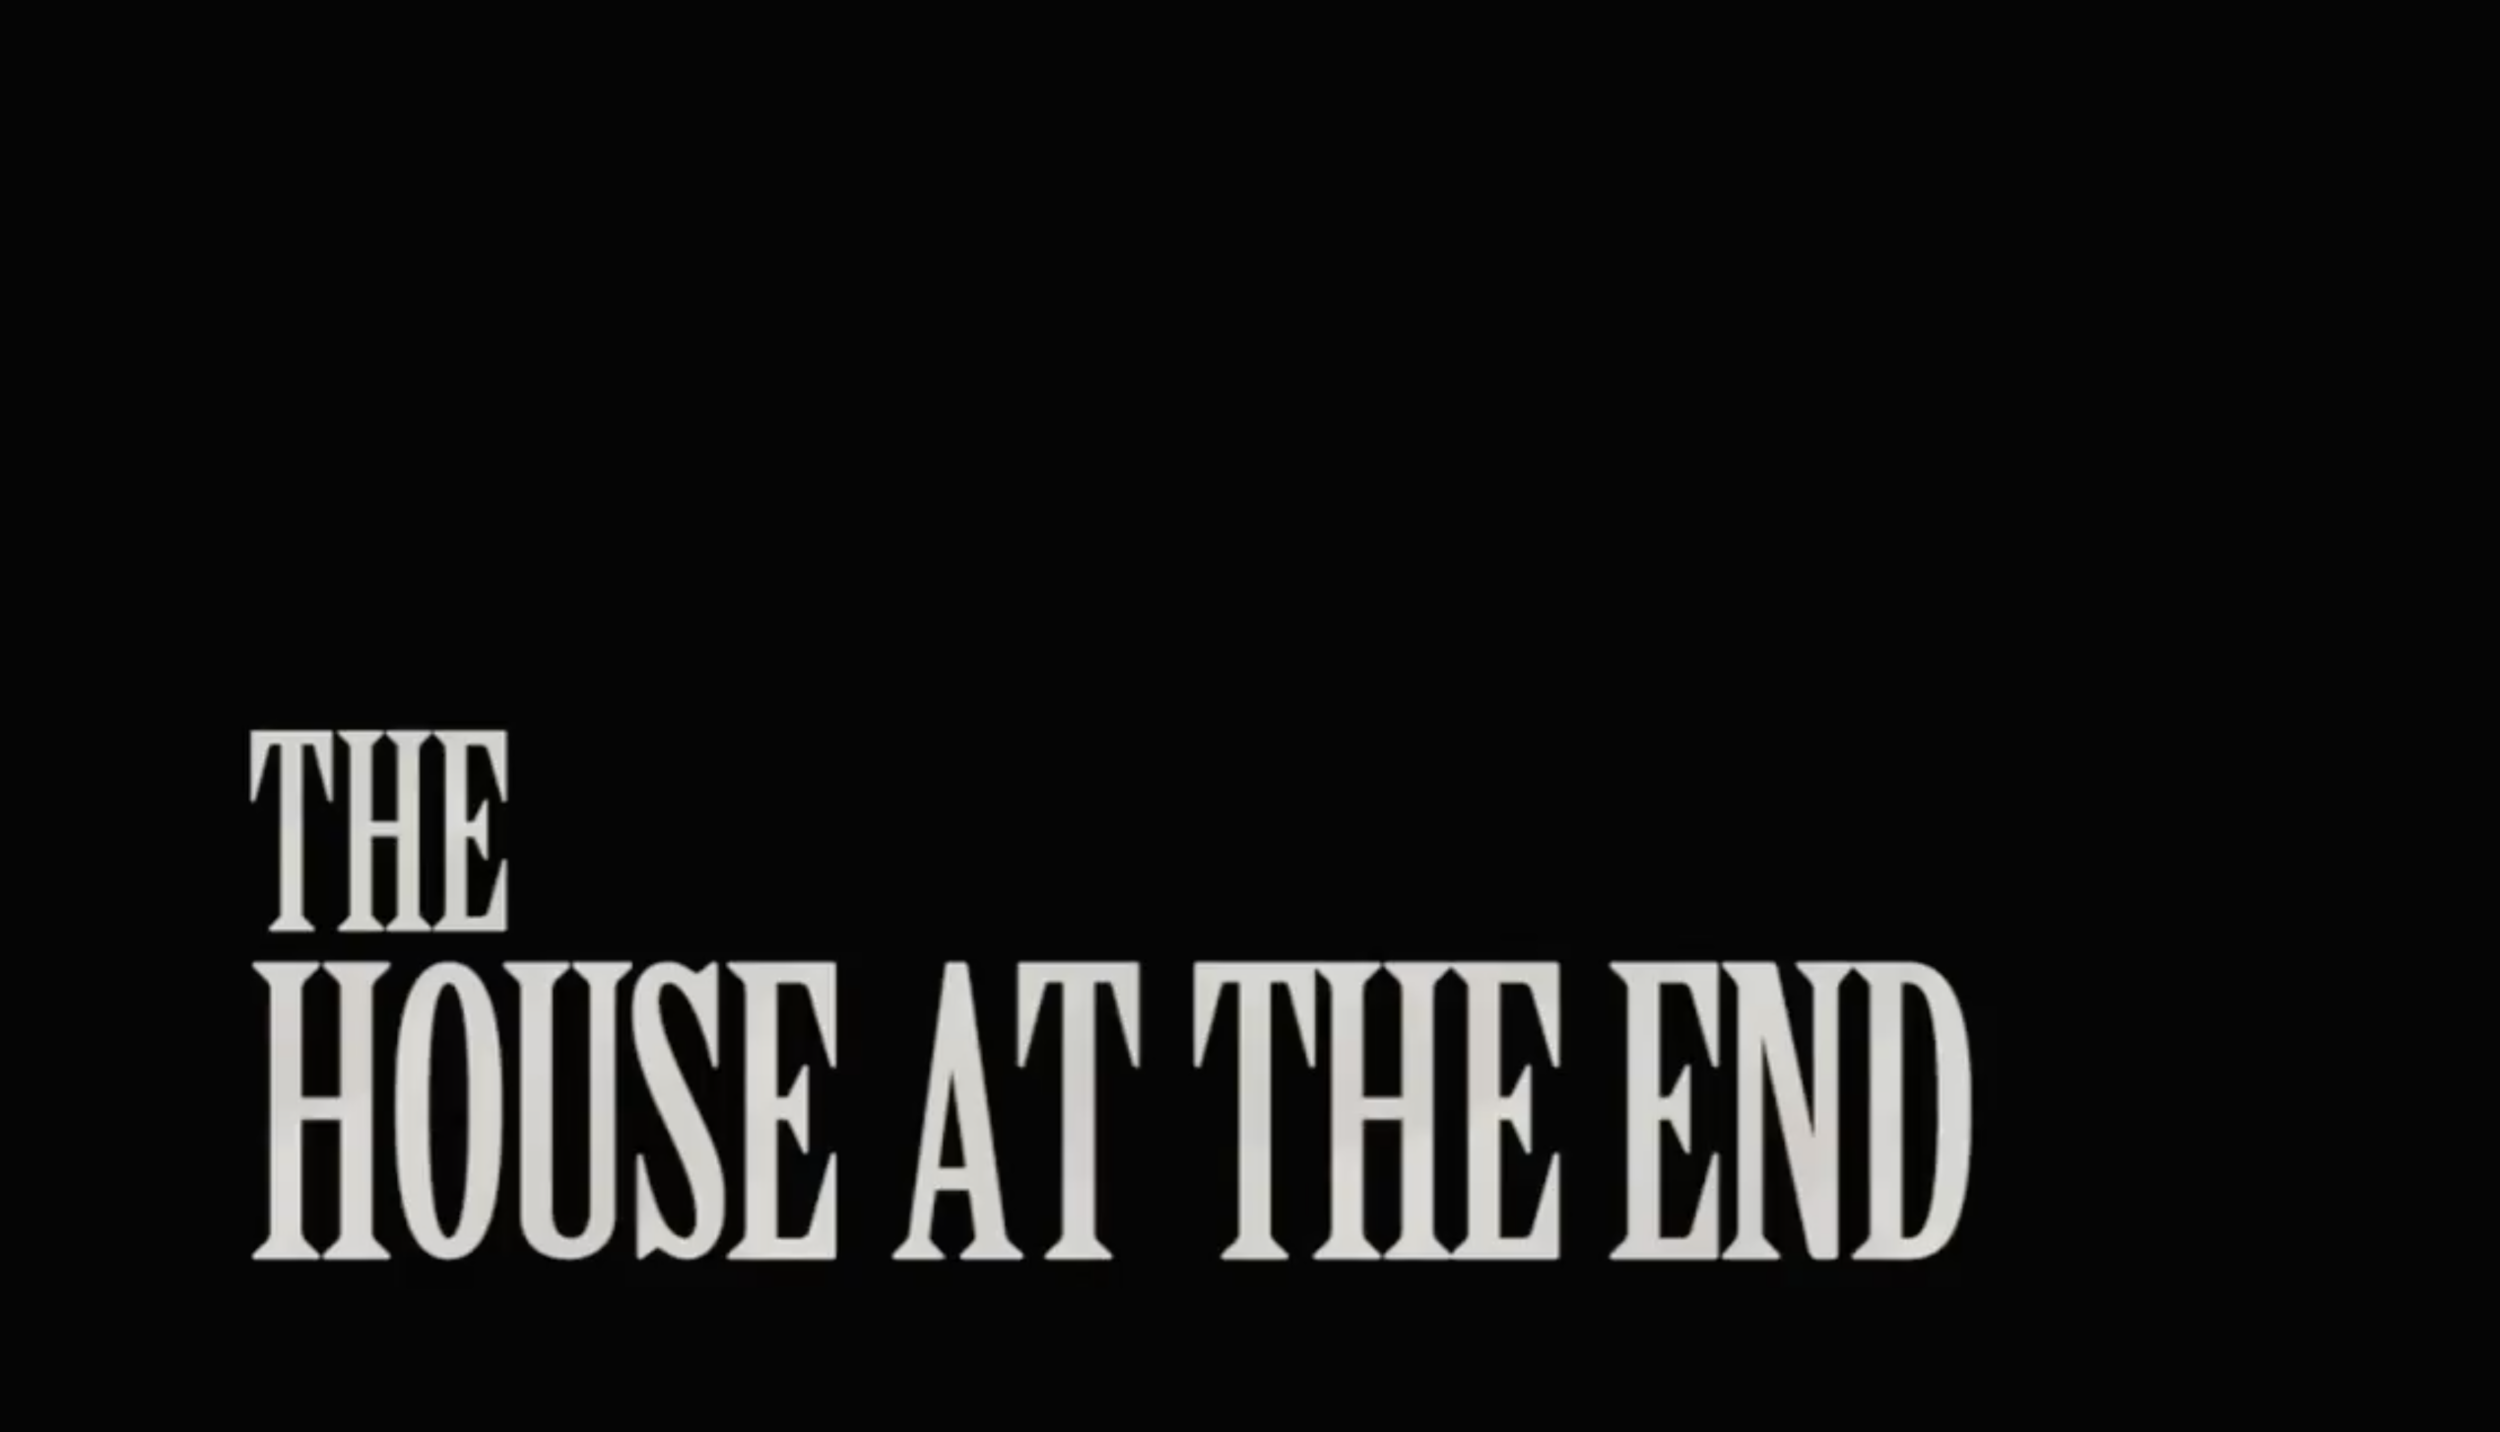 THE HOUSE AT THE END   Senior Thesis Film, Wesleyan University 2011